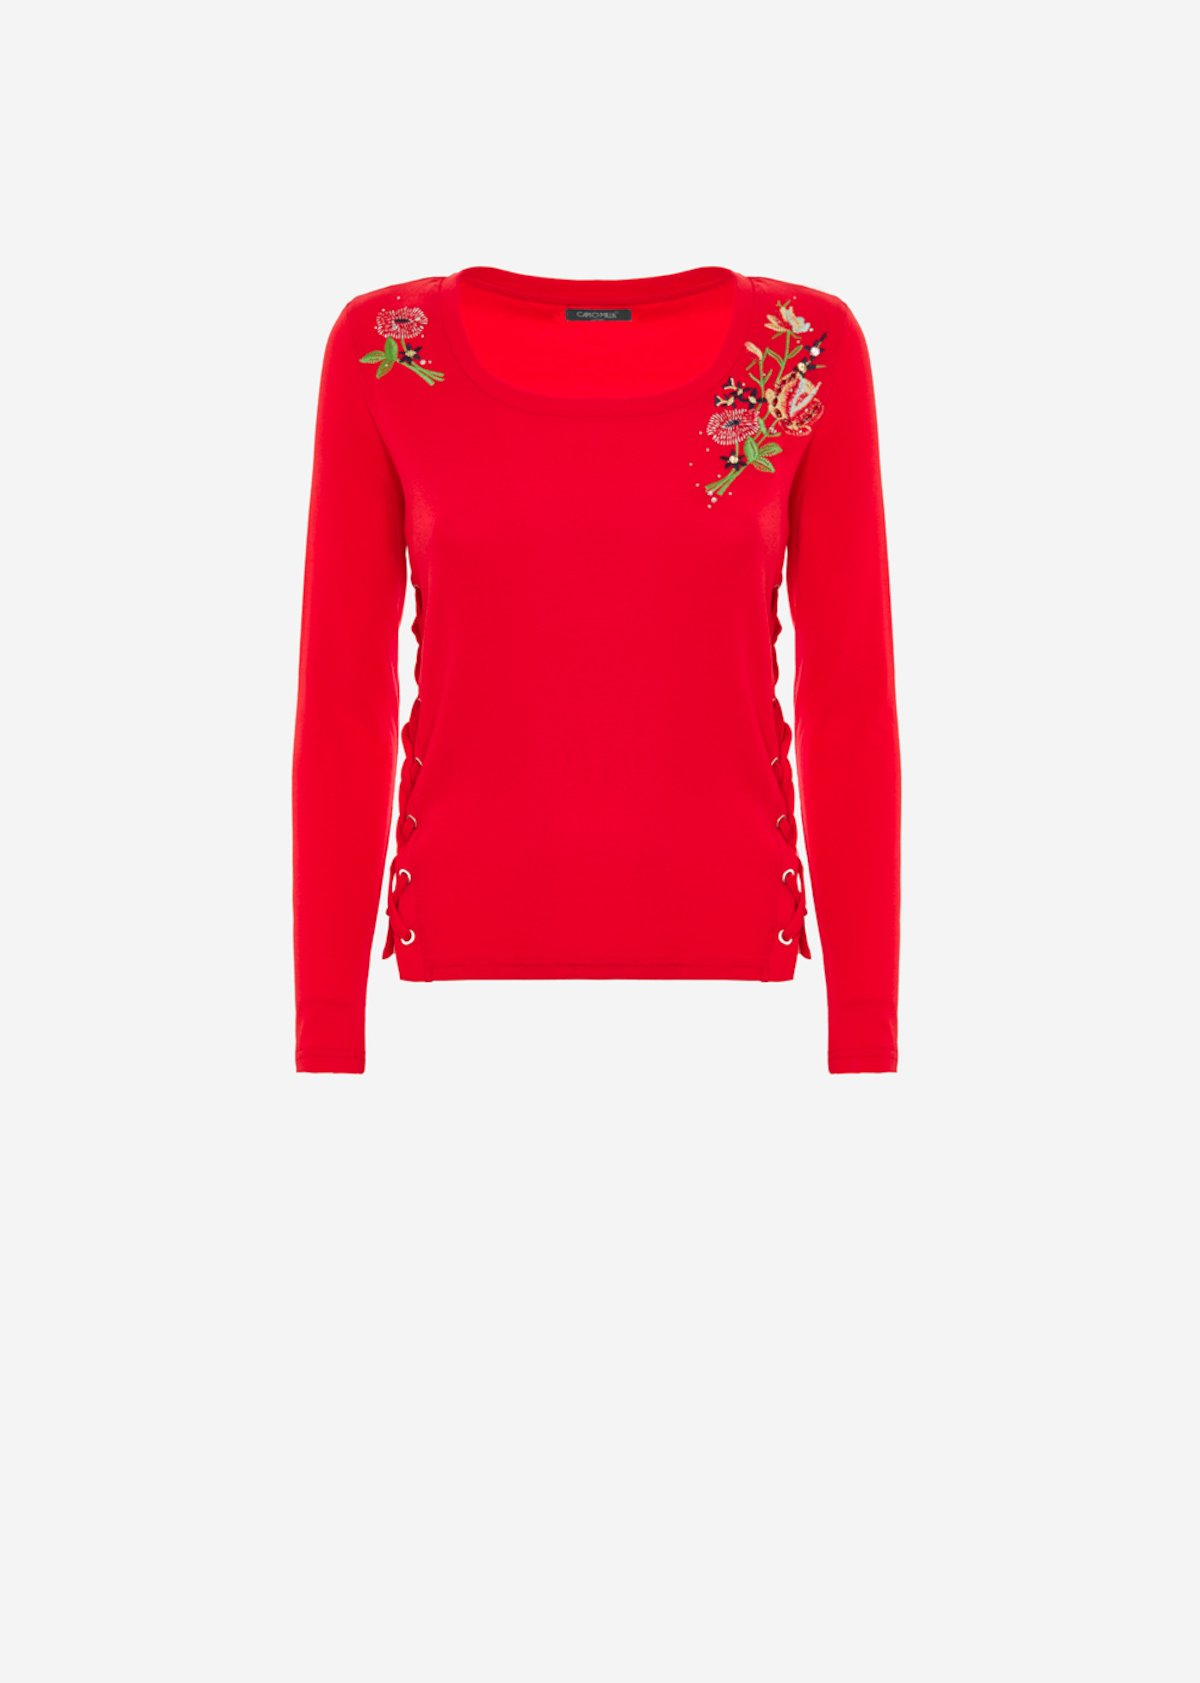 Shally t-shirt with floral embroidery - Poppy